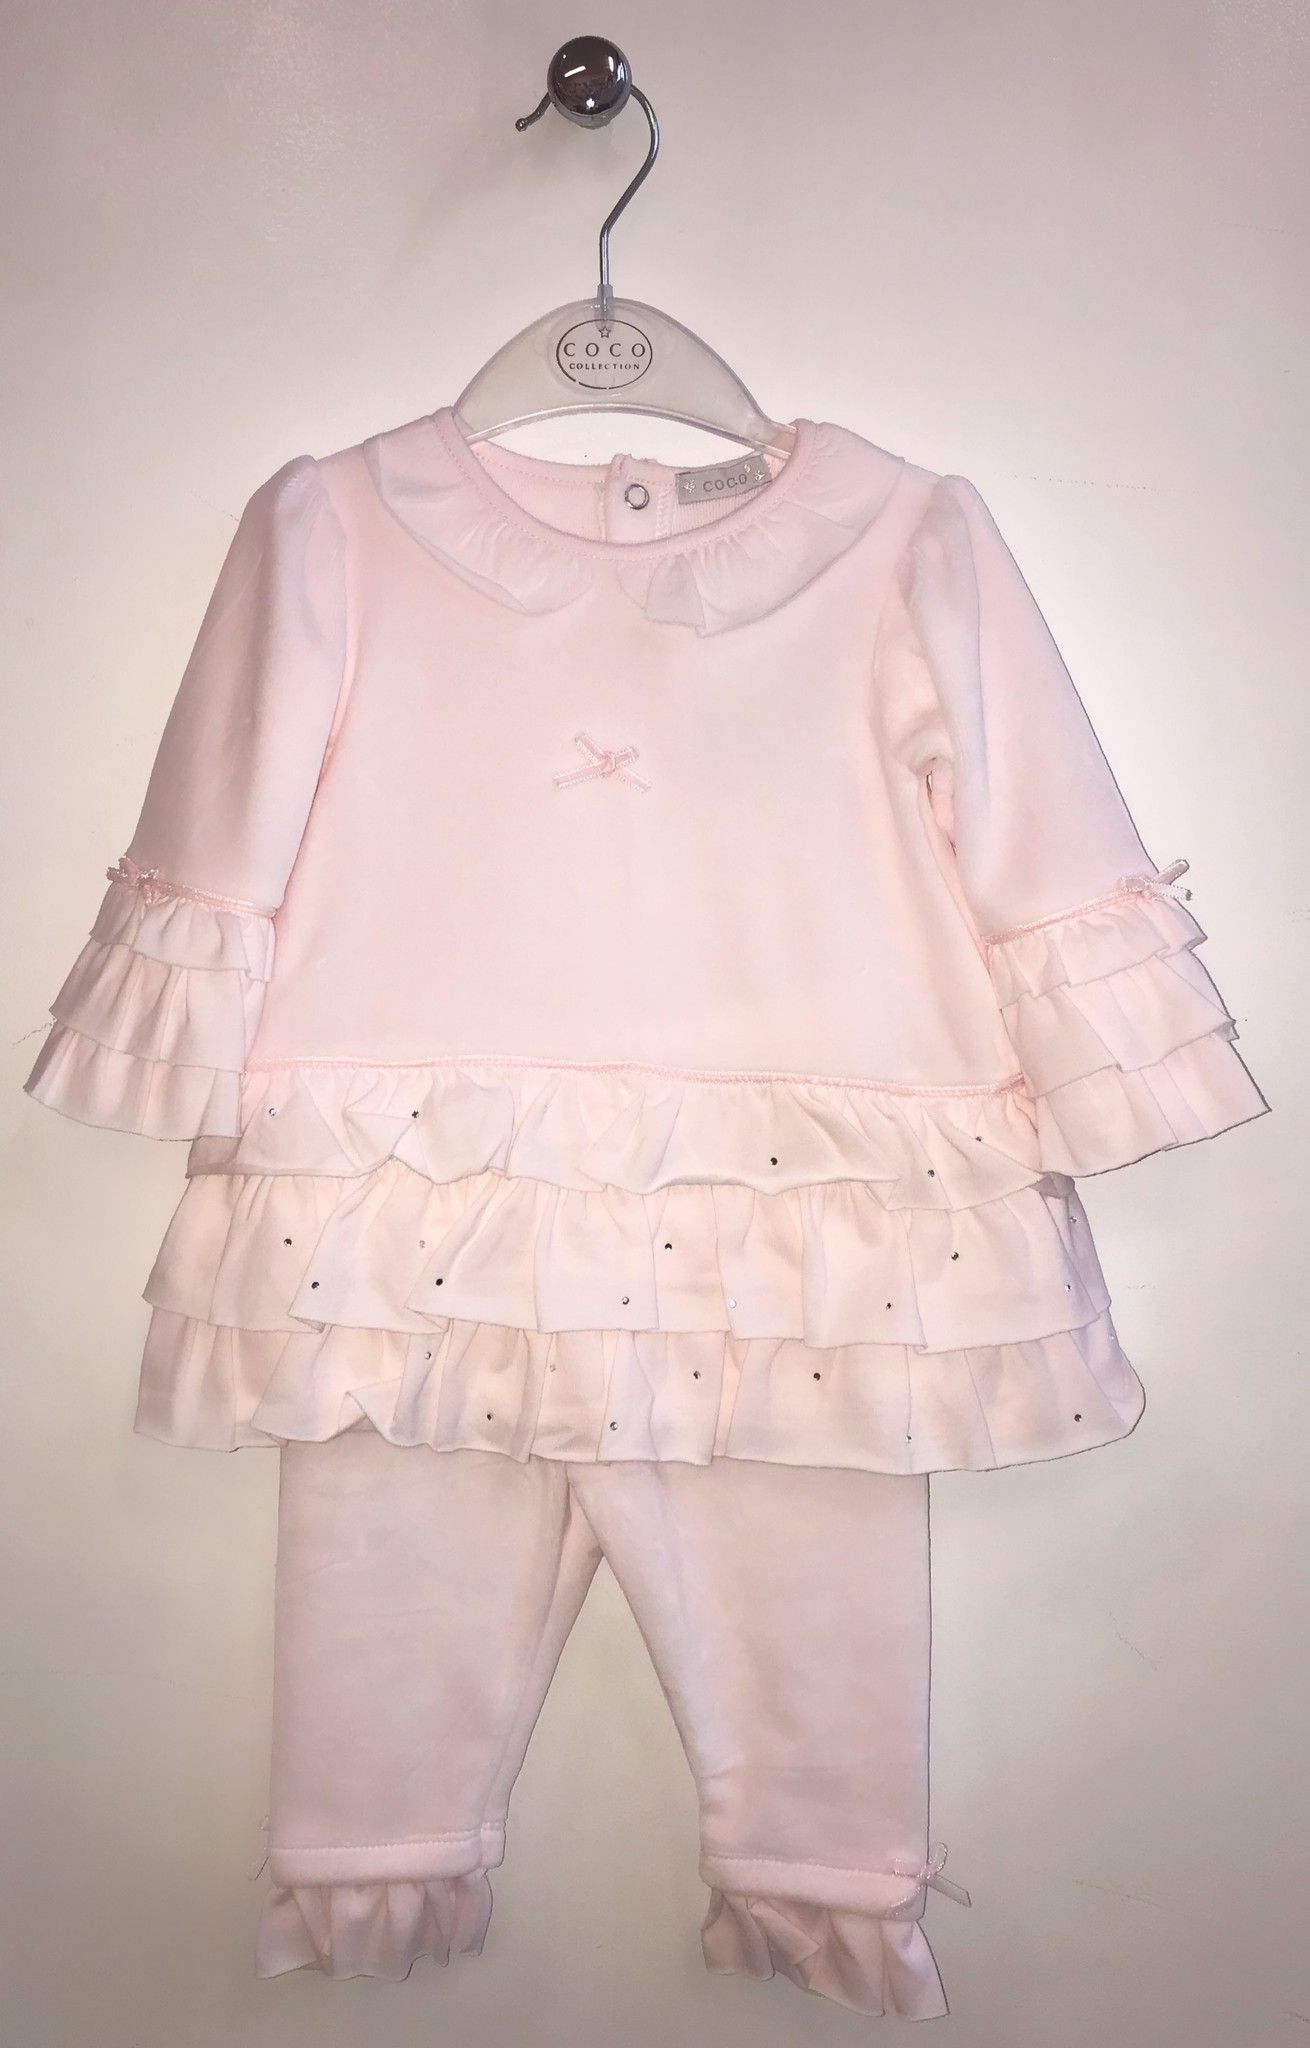 Coco Collection Coco Pink Velour 3 Piece with Ruffles